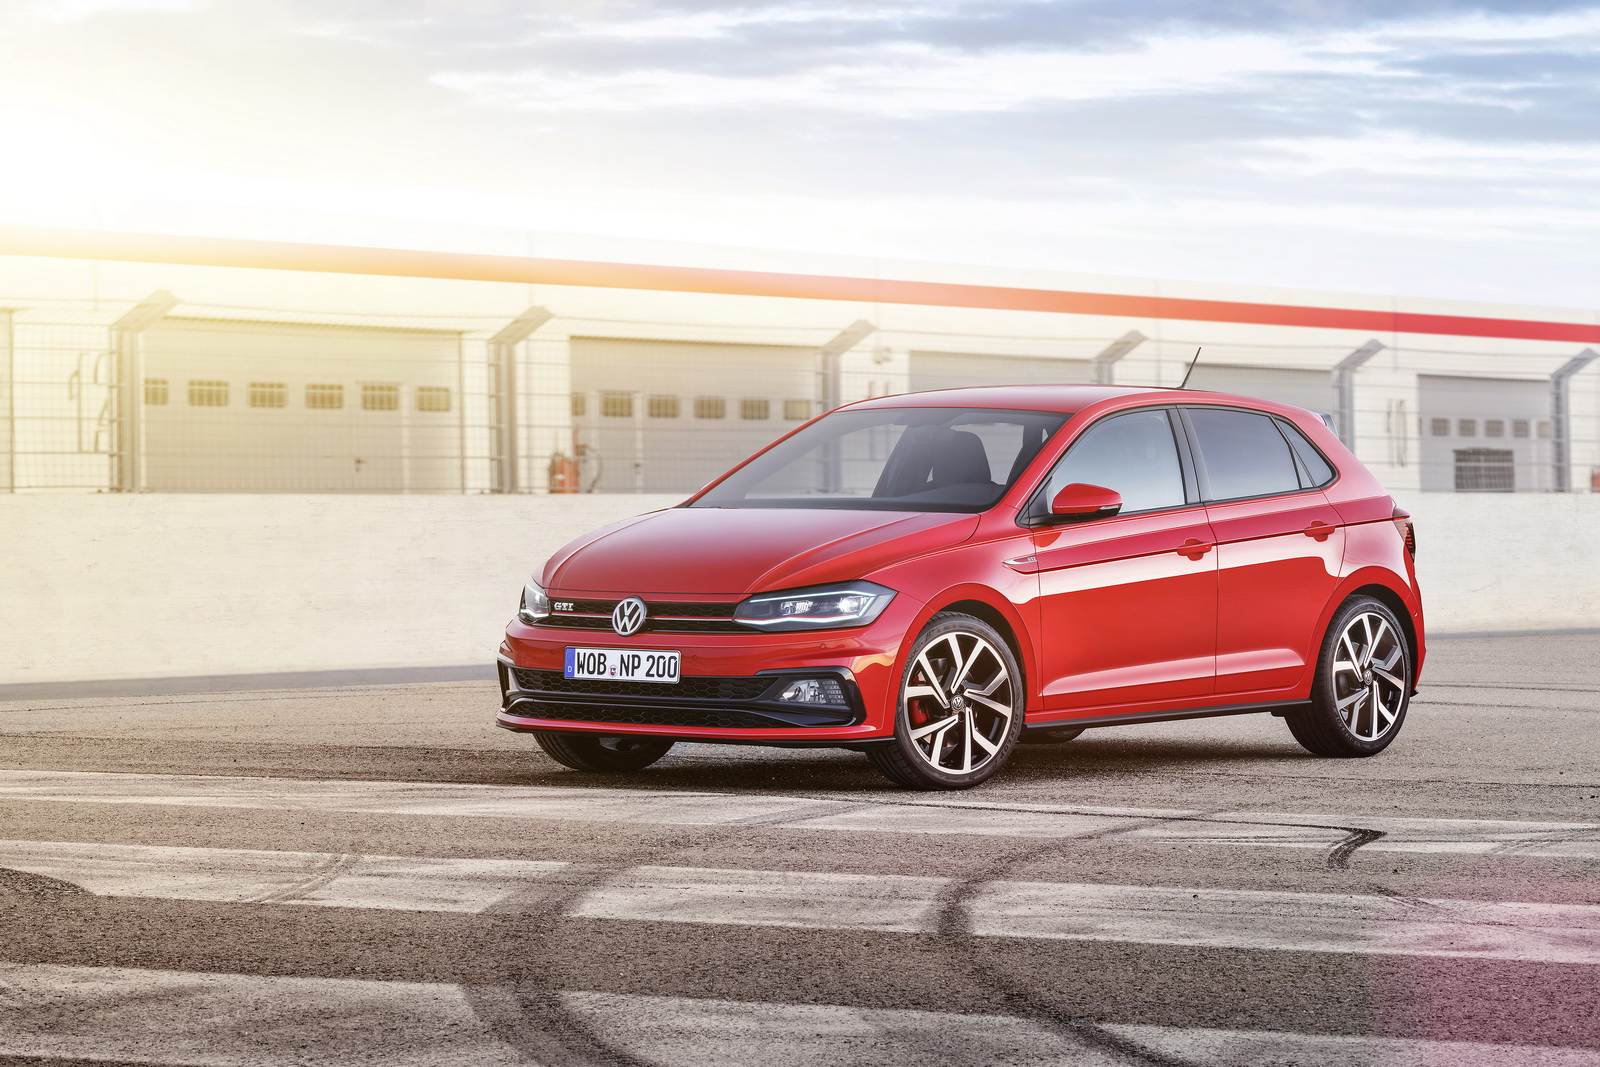 Volkswagen Polo and Polo GTI 2018 (44)